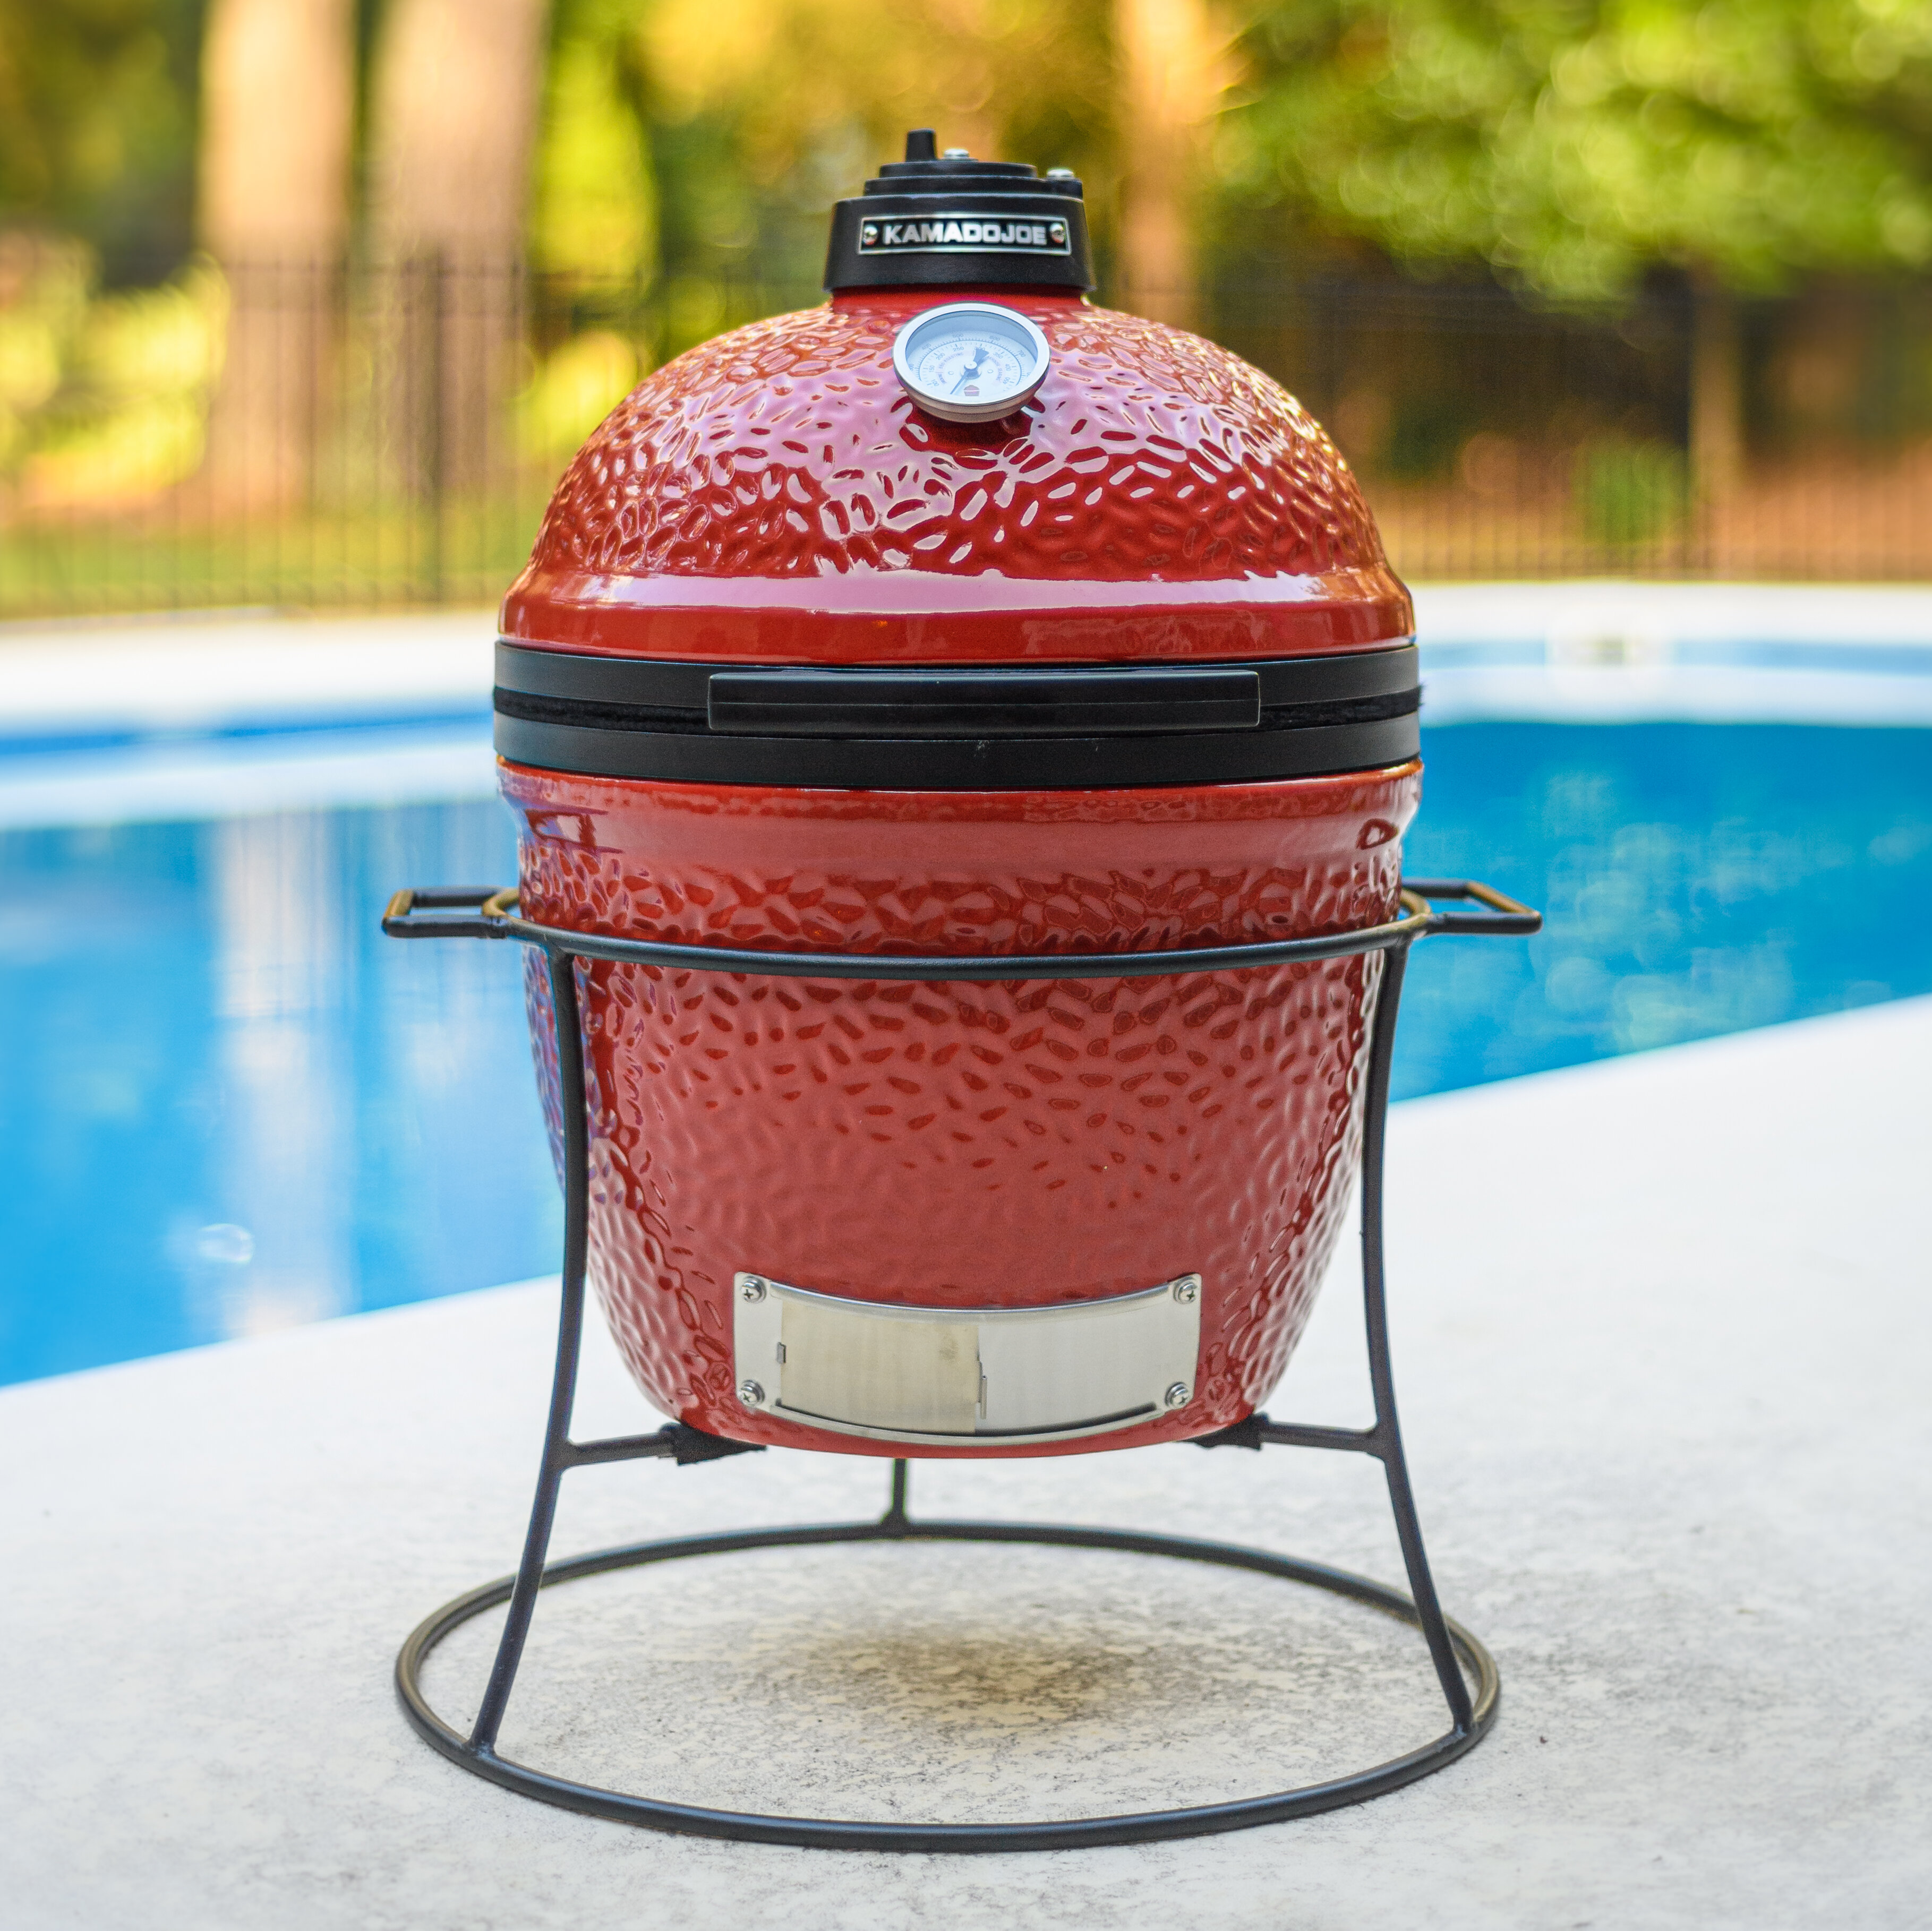 How To Maintain A BBQ Machine For Proper Use